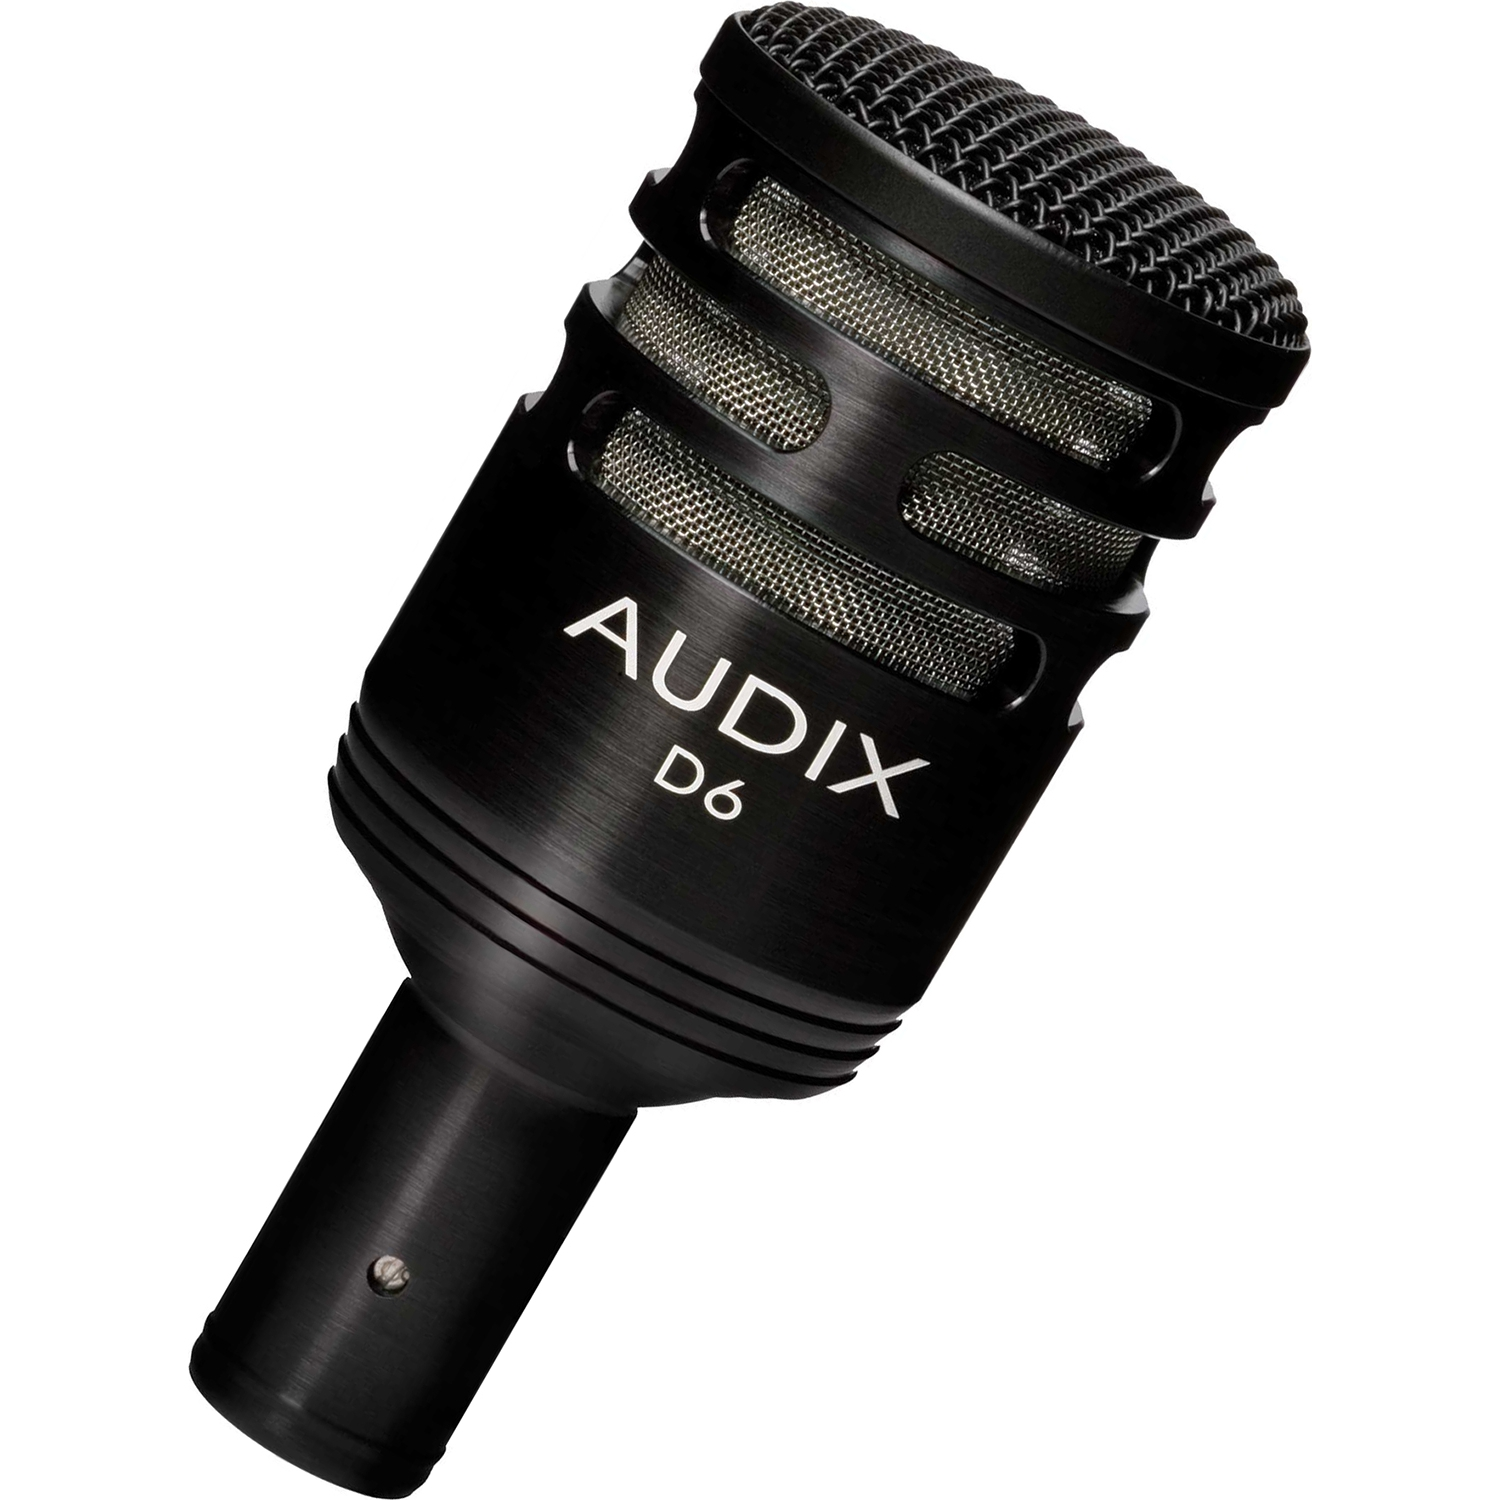 Audix D6 Hire